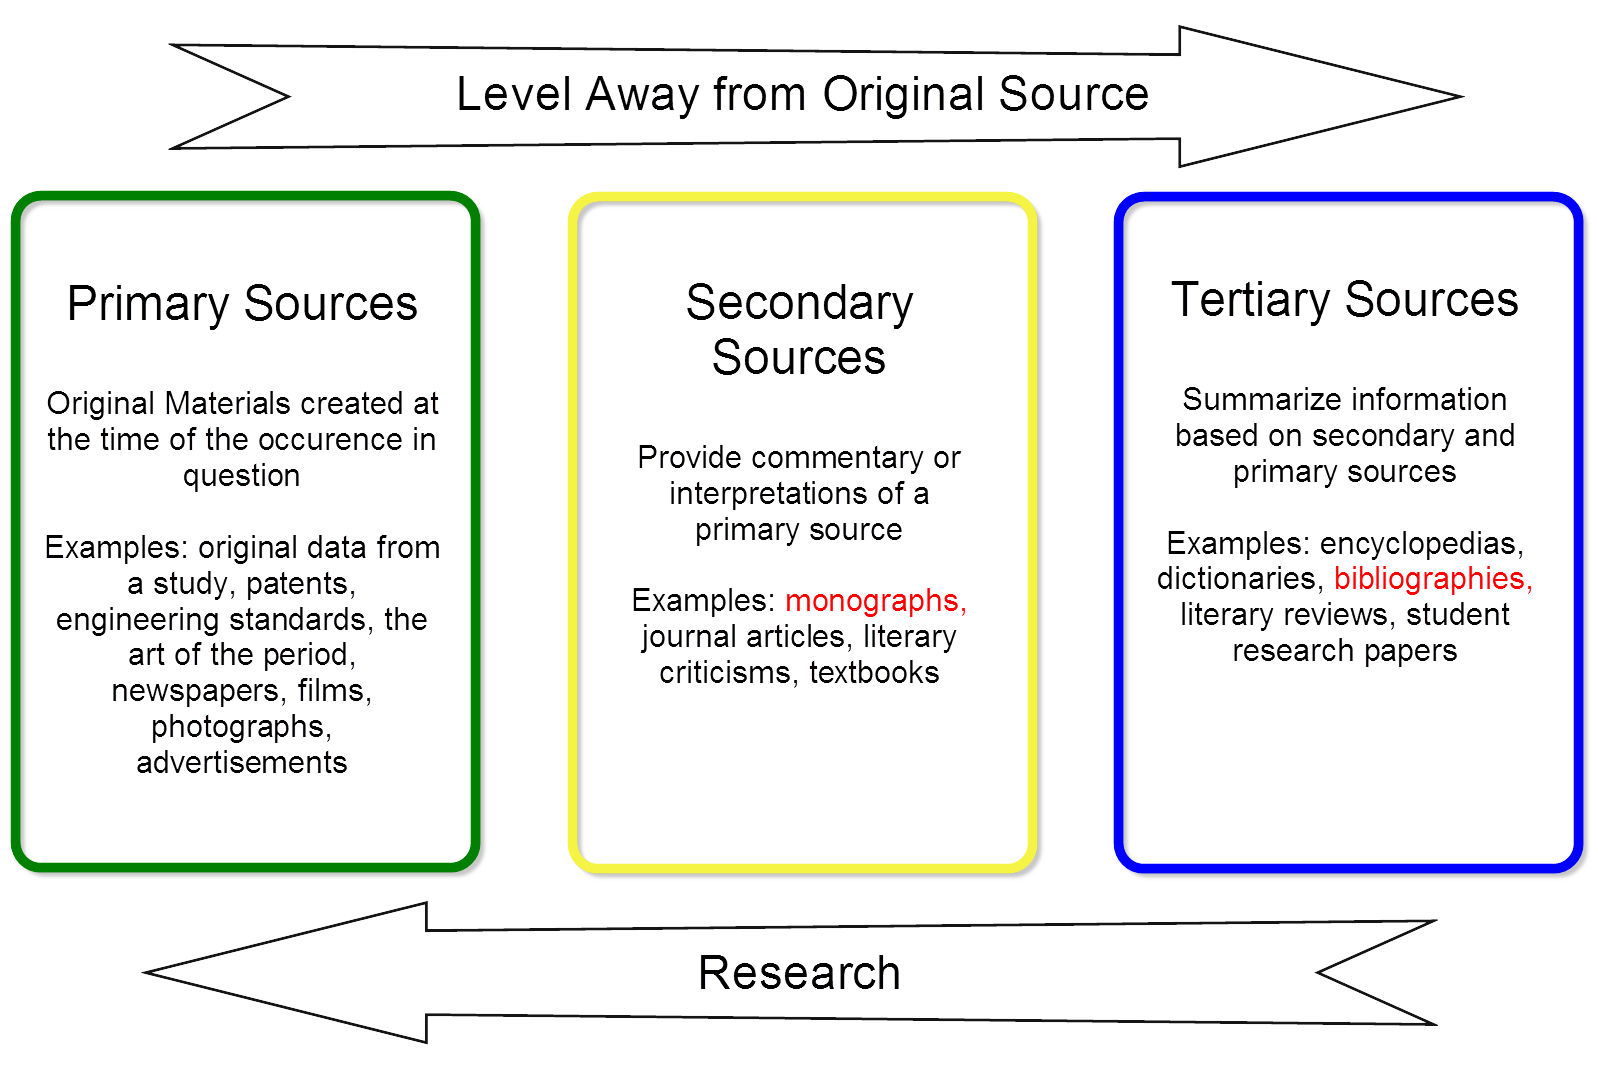 level of origin graphic defining primary, secondary and tertiary sources